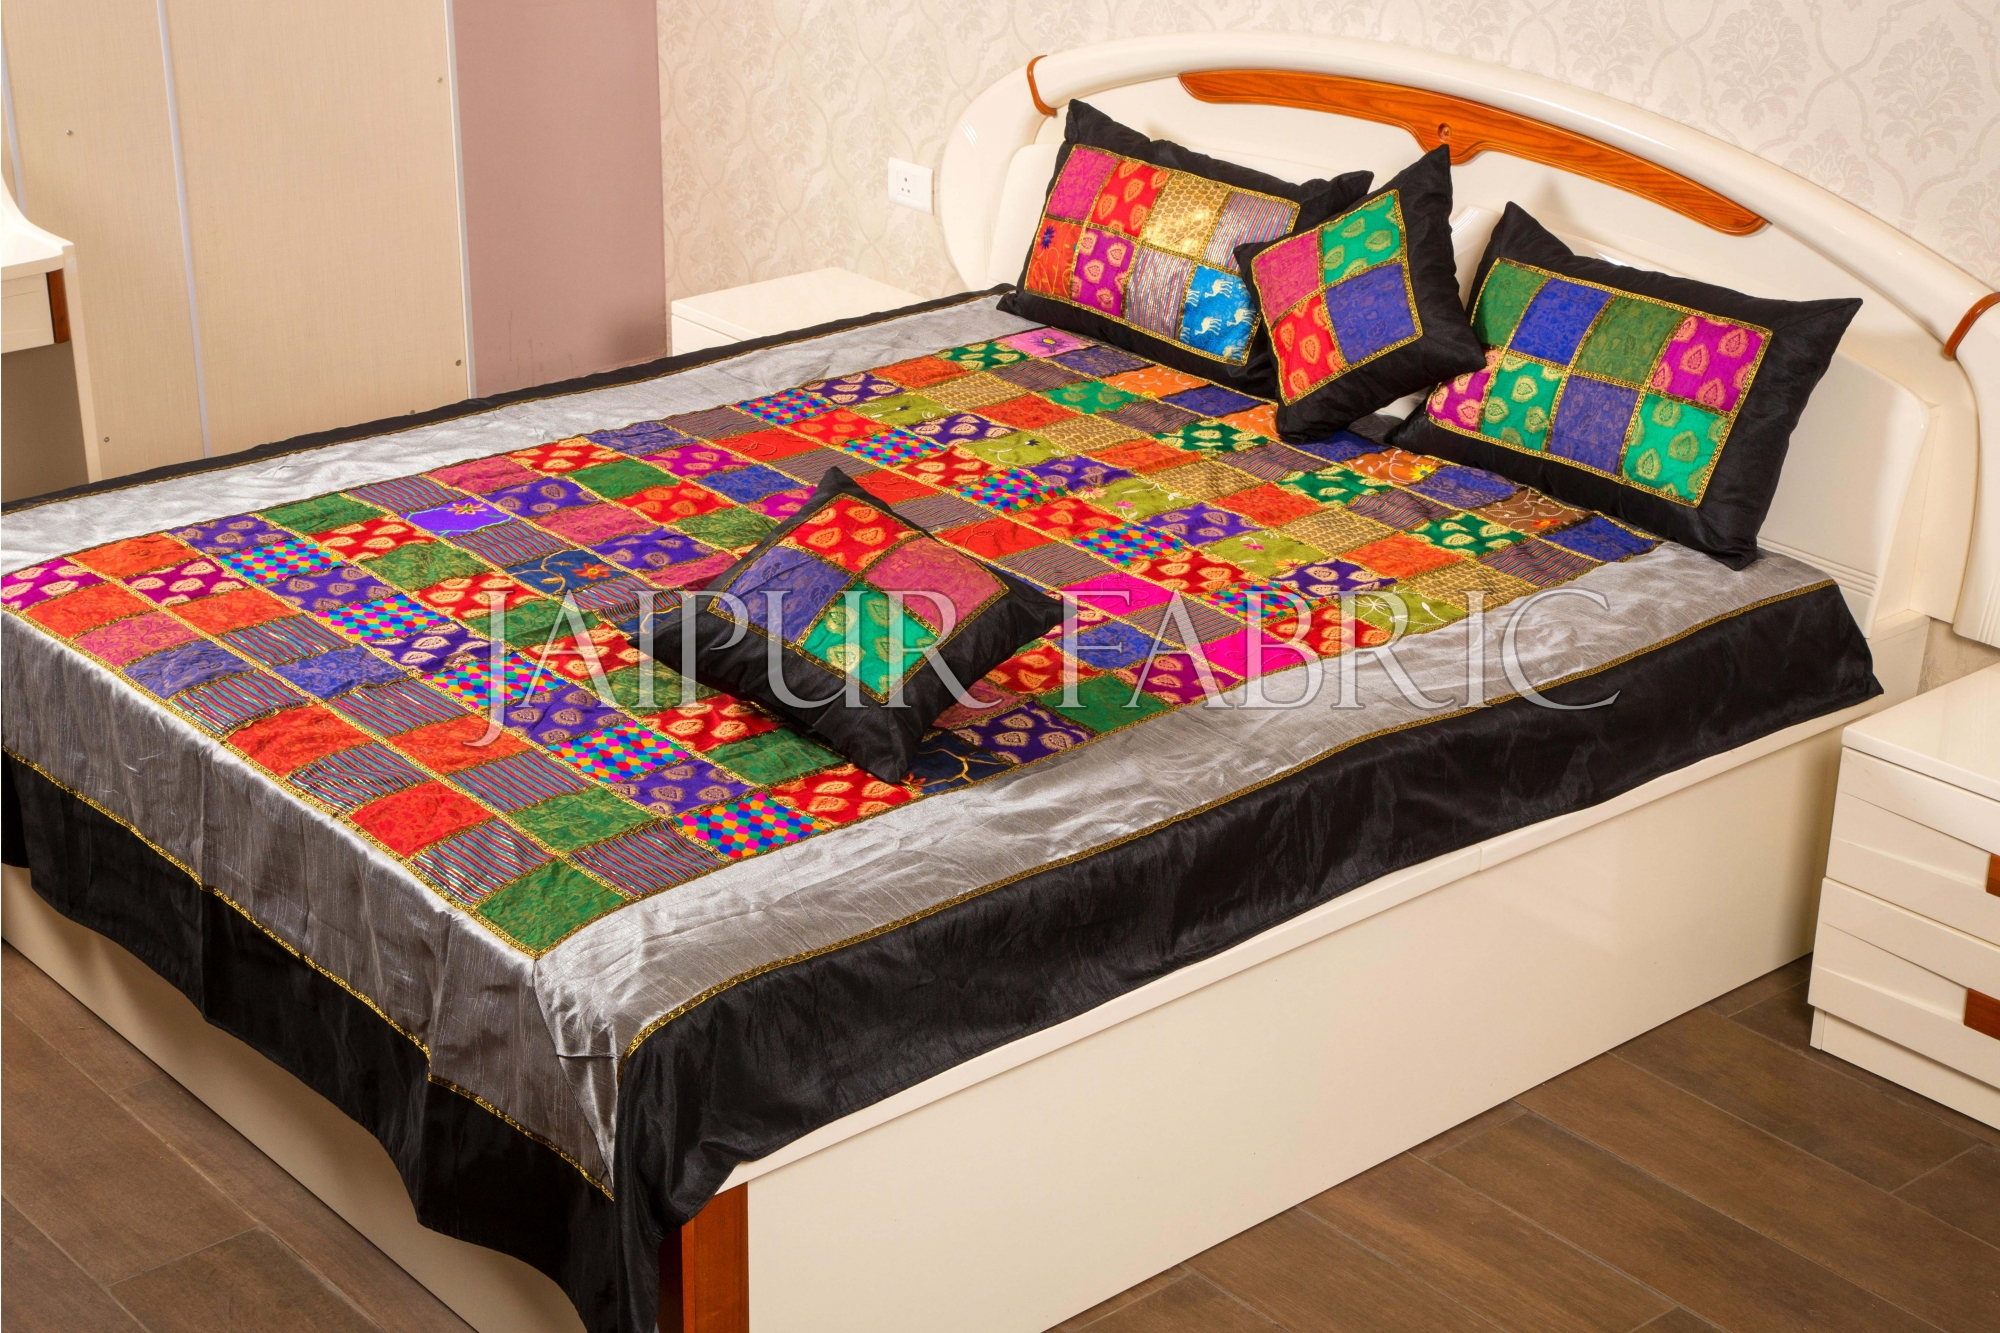 Rajasthan Patchwork Gold Print Double Bed Sheet with Two Pillow Covers and Two Cushion Covers